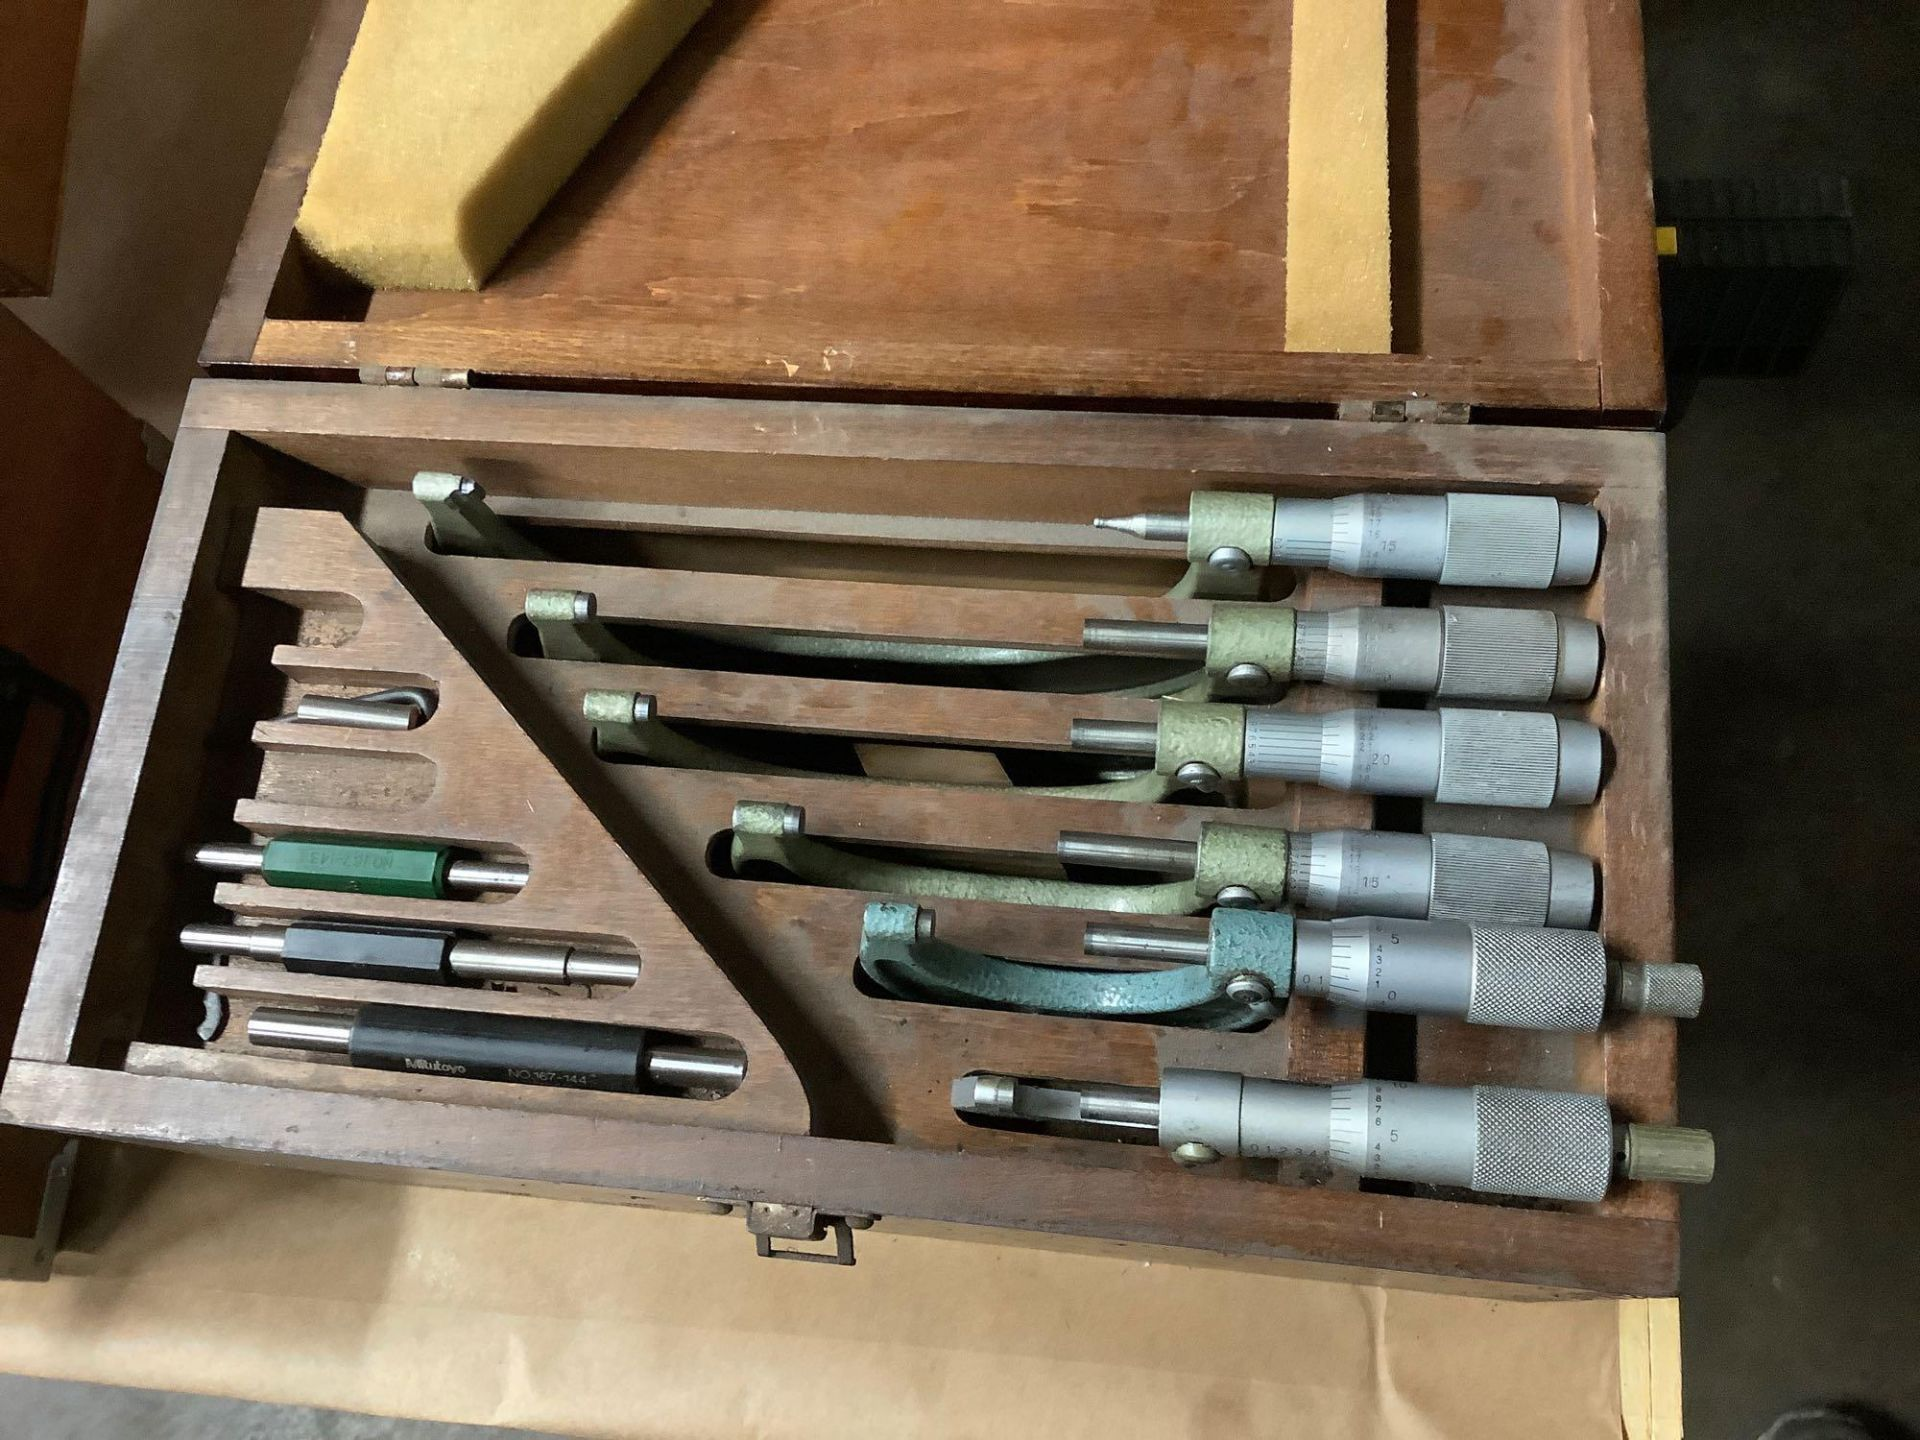 """Set of OD Micrometers, Mixed Brands 0-1"""" thru 5-6"""" - Image 2 of 3"""